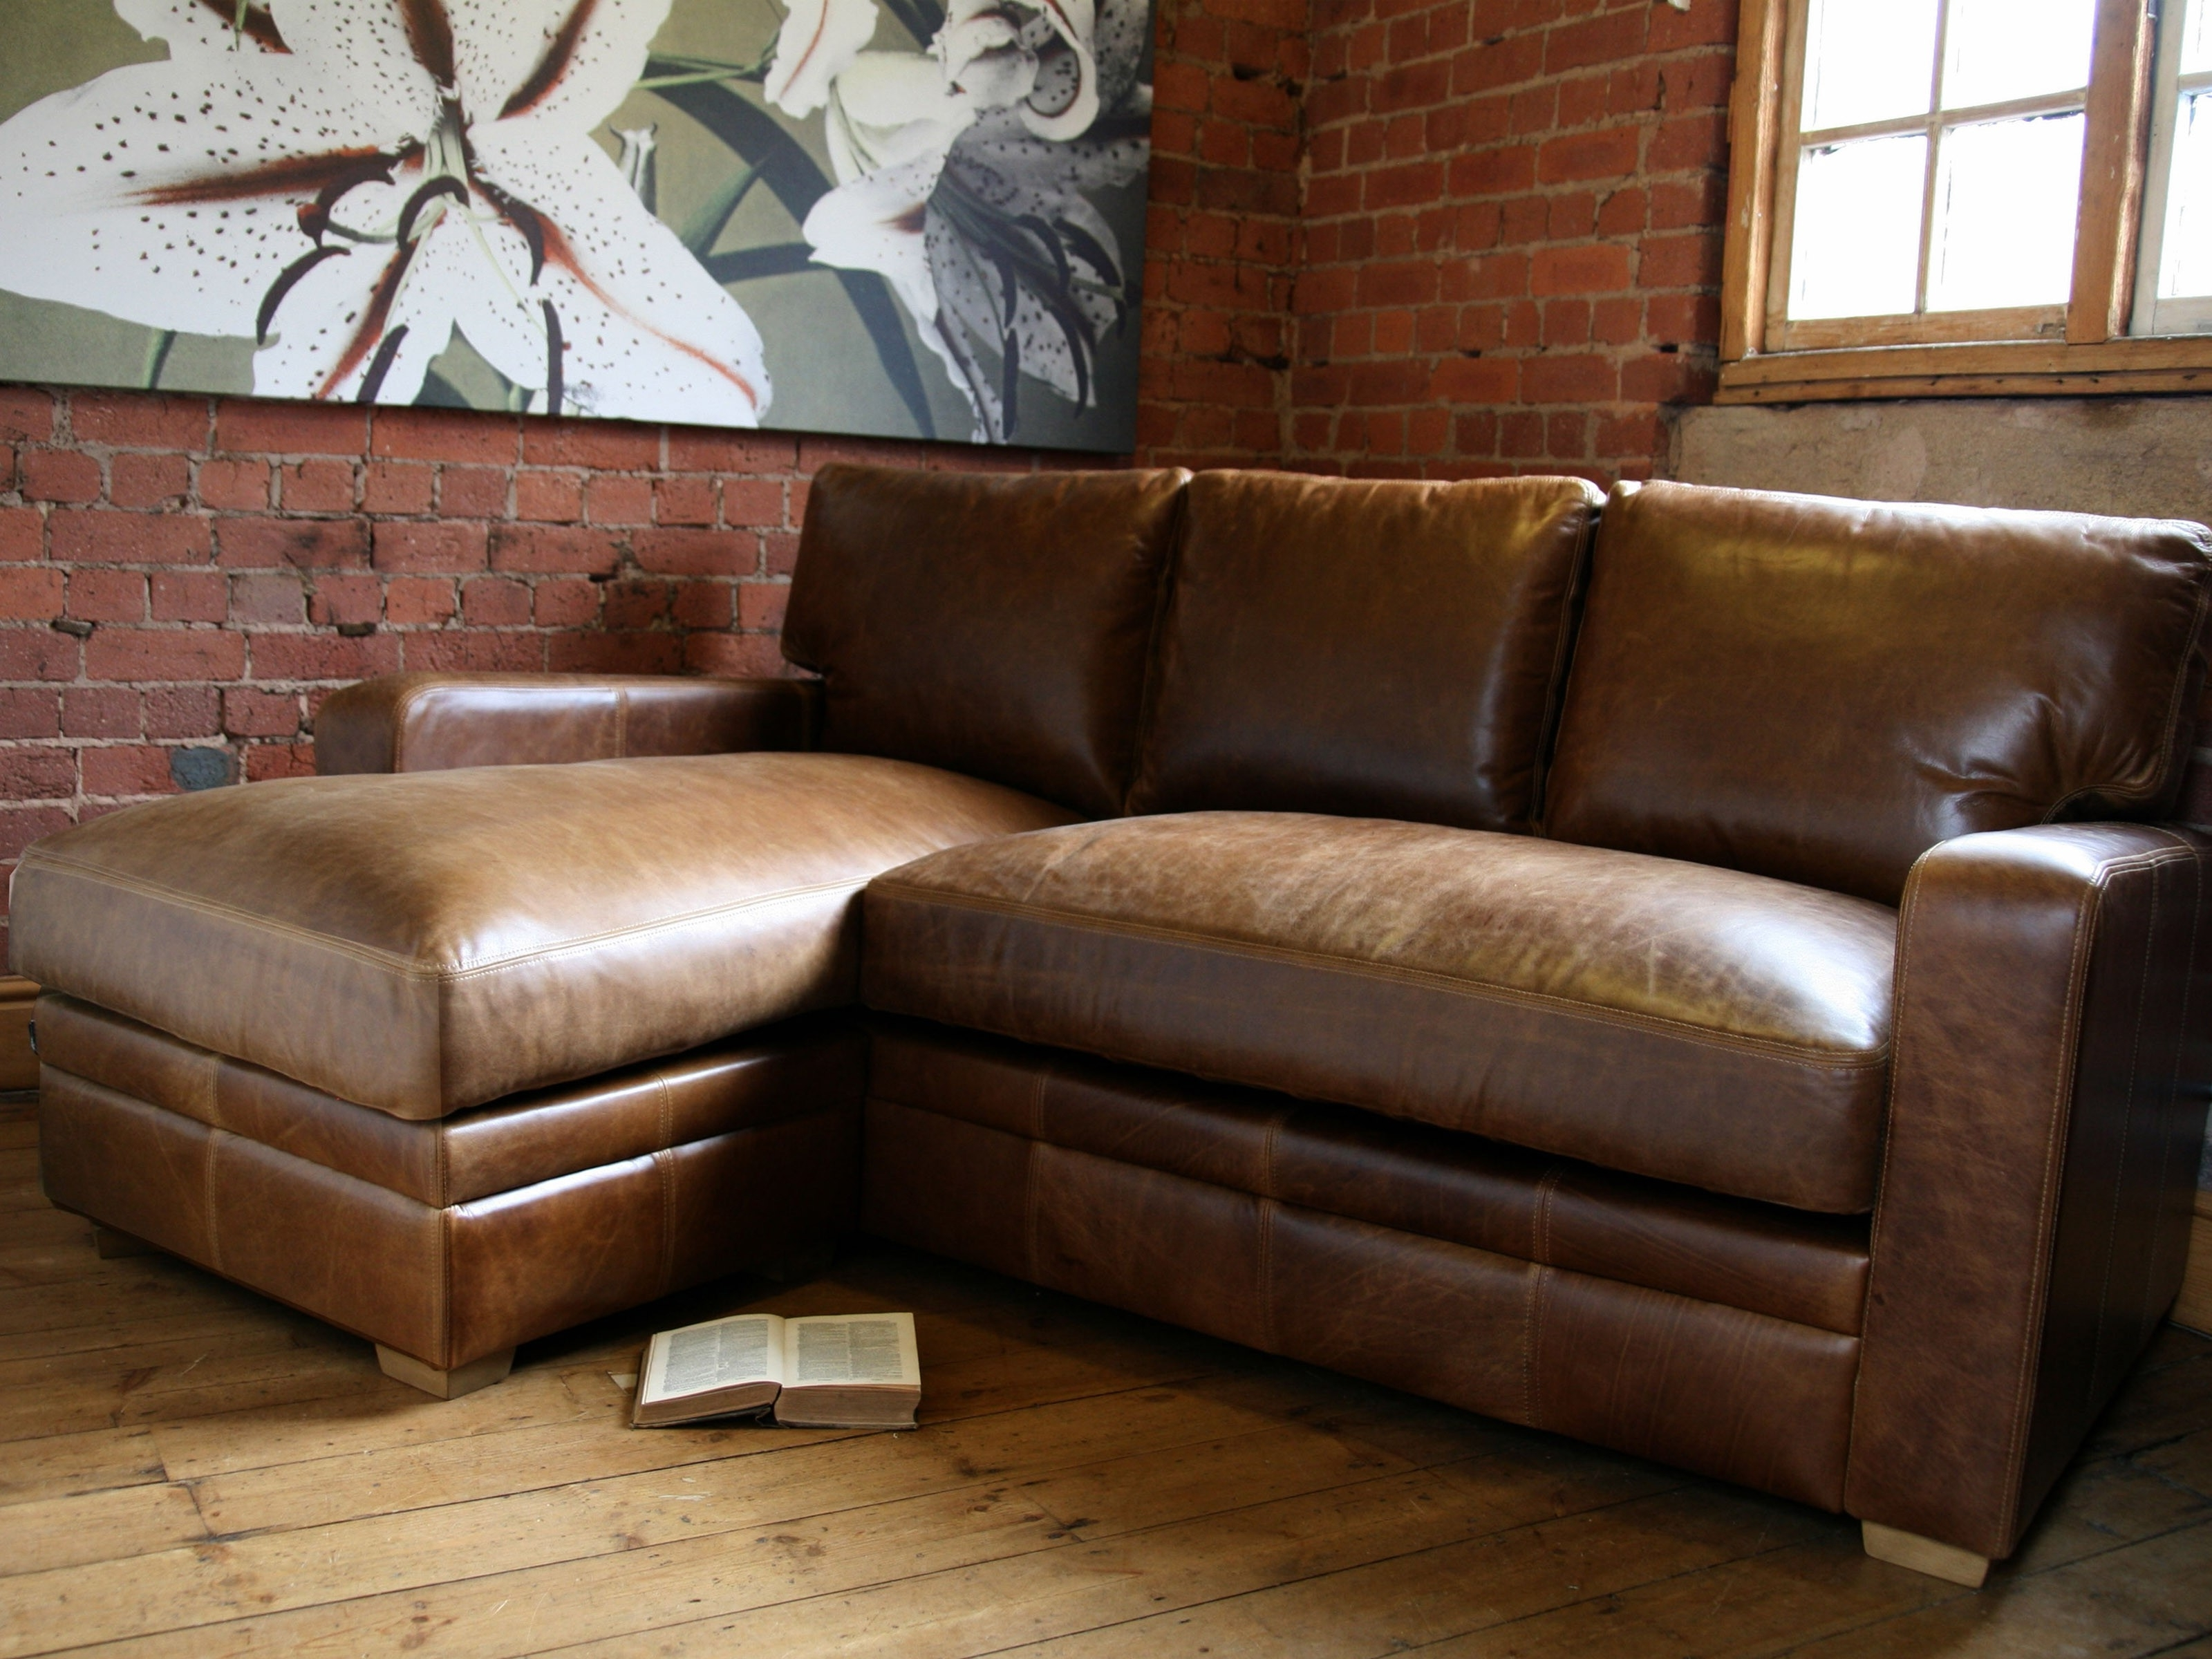 Popular Furniture: Fancy Tan Leather Sofa 19 Sofas And Couches Set With Inside Light Tan Leather Sofas (View 18 of 20)